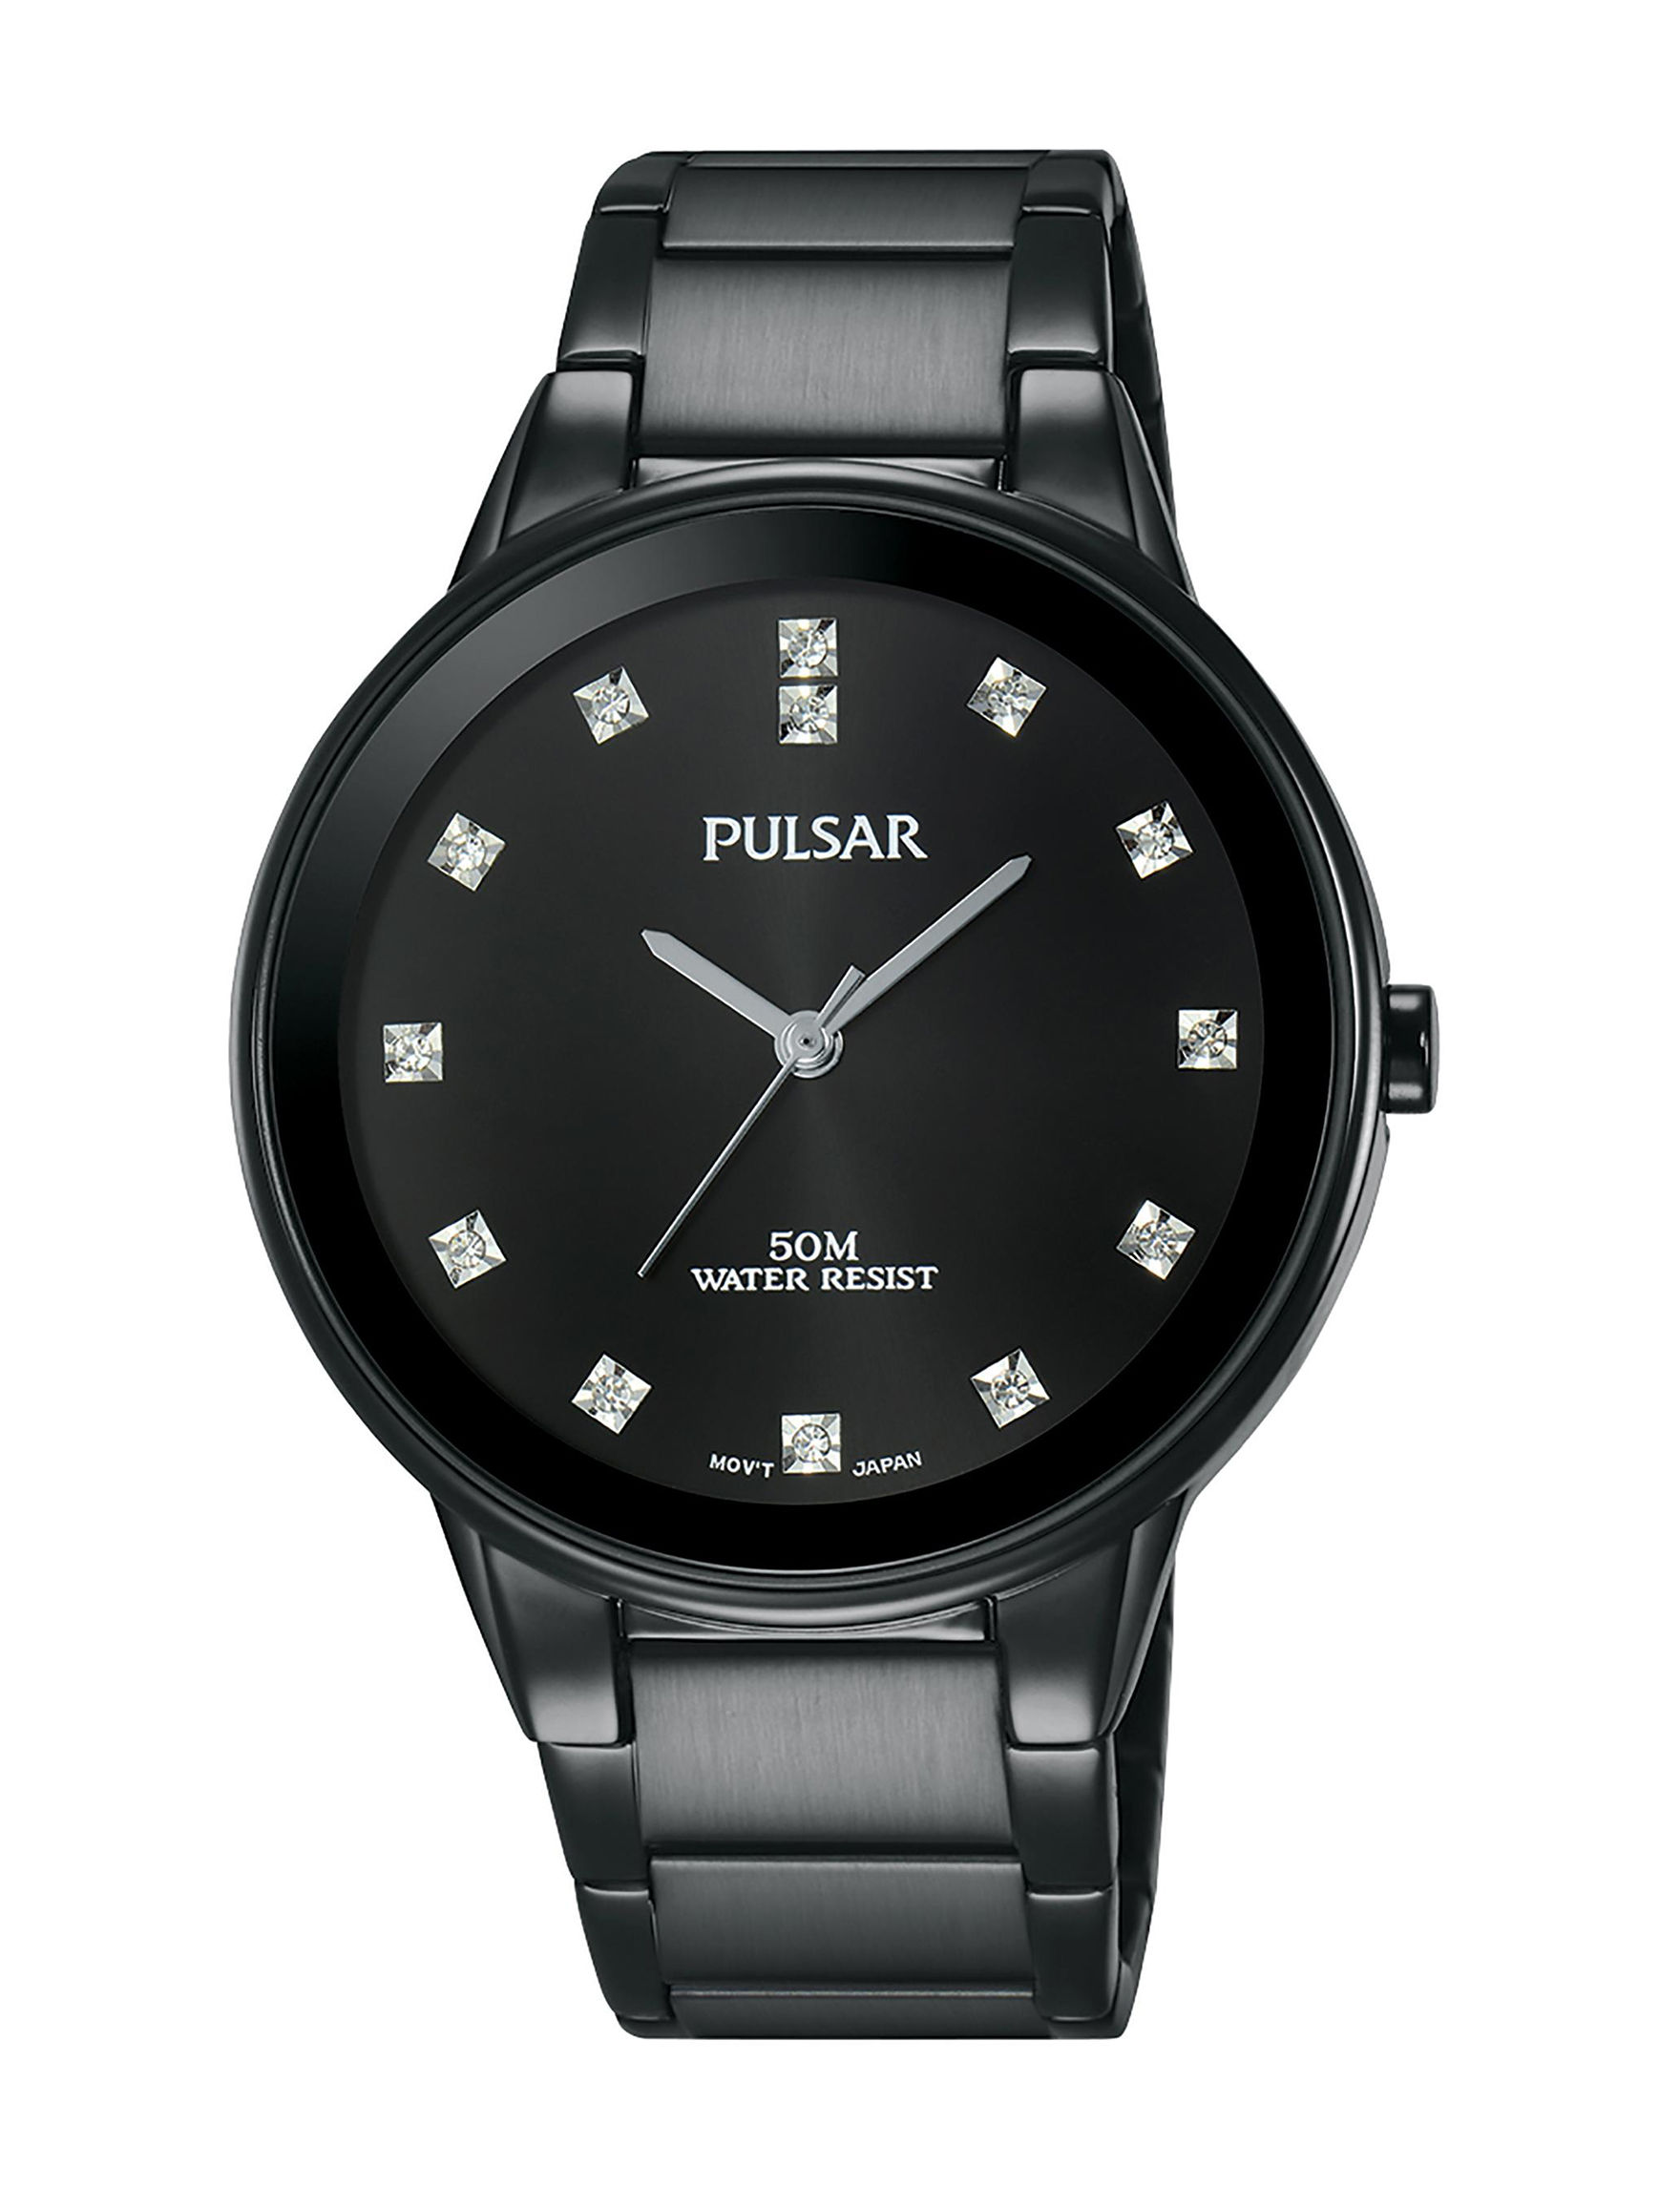 Pulsar Black Fashion Watches